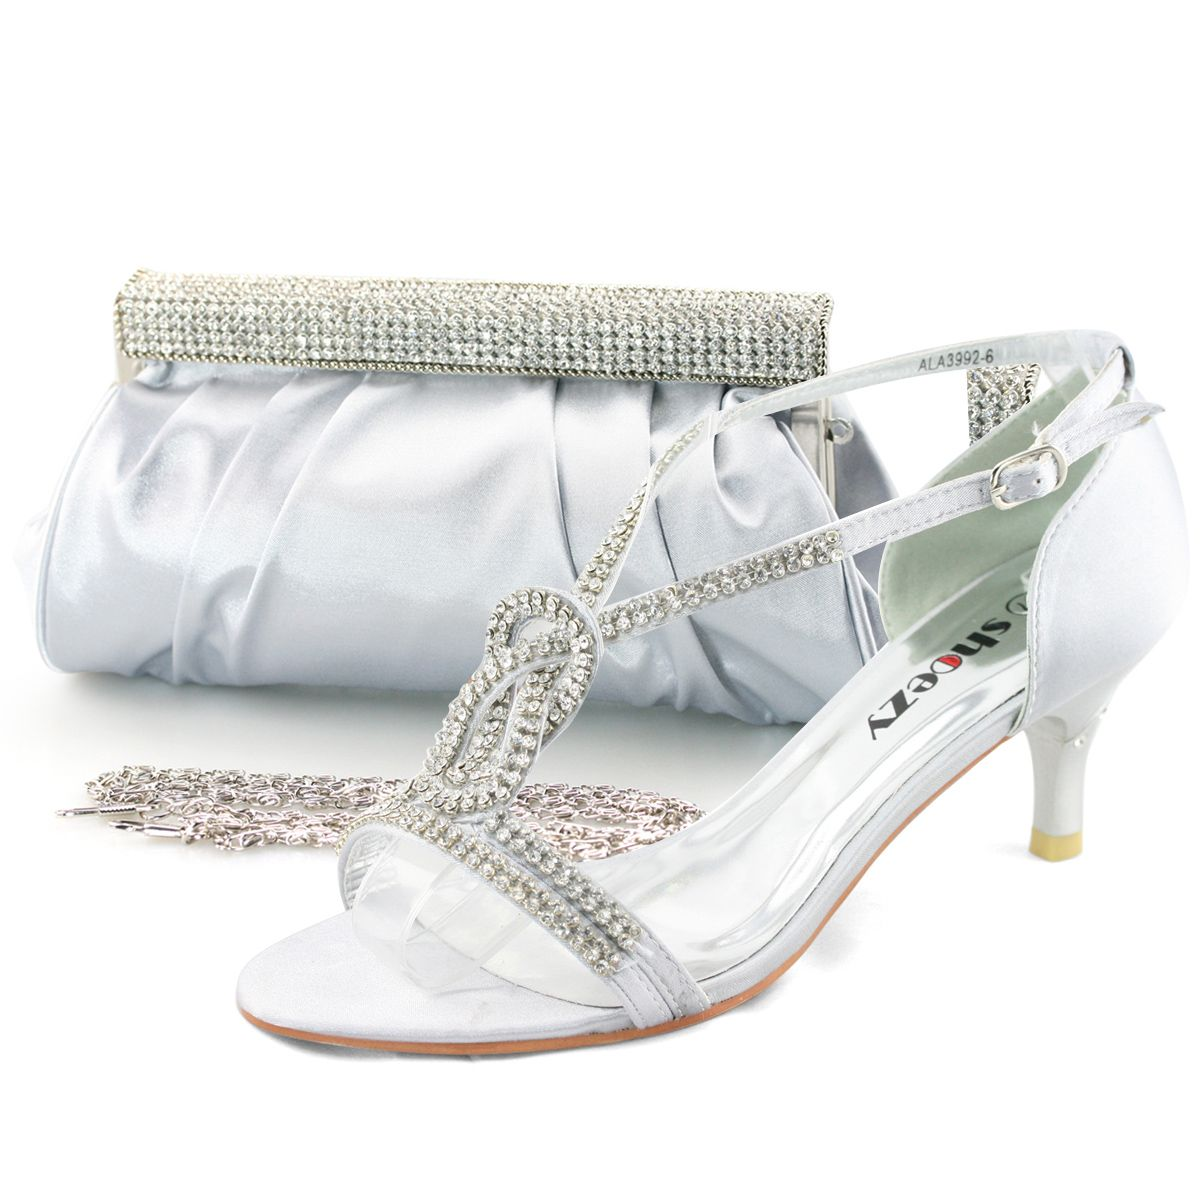 abff77c8a8e Ladies Silver Satin Low Heels Diamante Sandals Shoes Purse Handbag Wedding  Bag